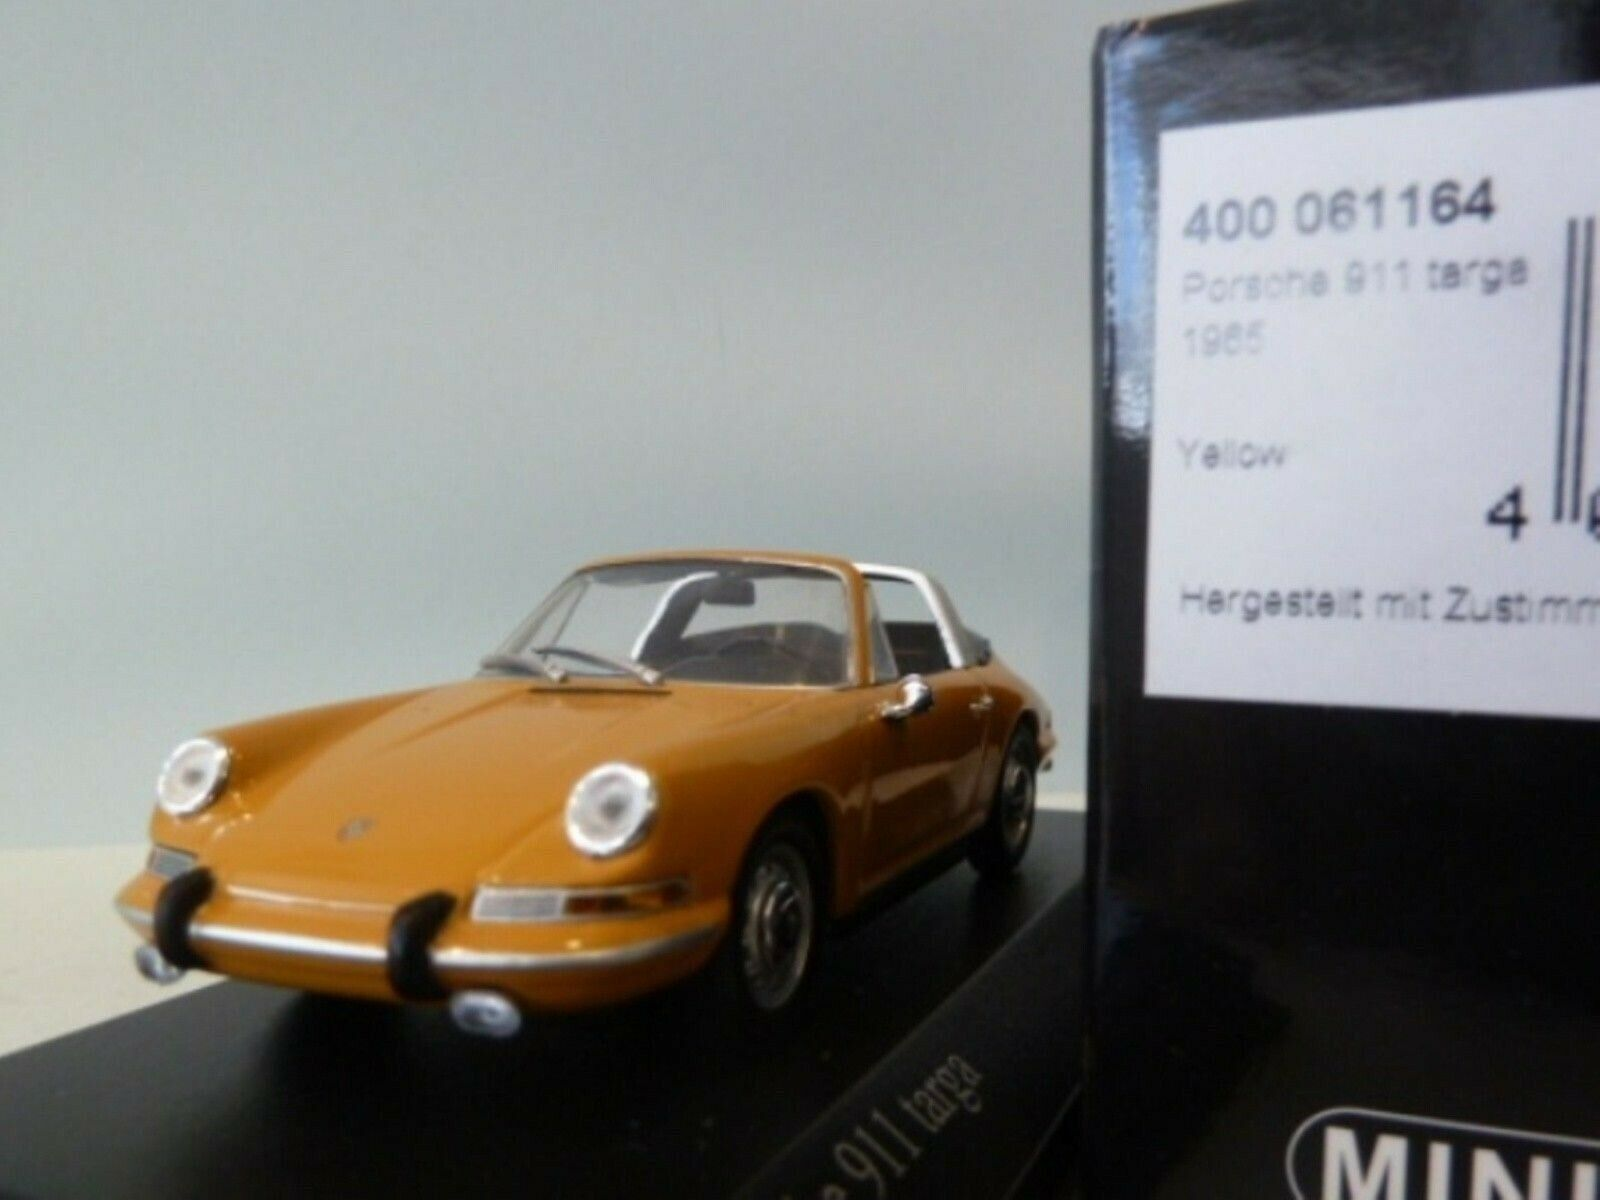 WOW EXTREMELY RARE Porsche 911 1965 Targa orange 1 43 Minichamps-356 RSR R S GT3